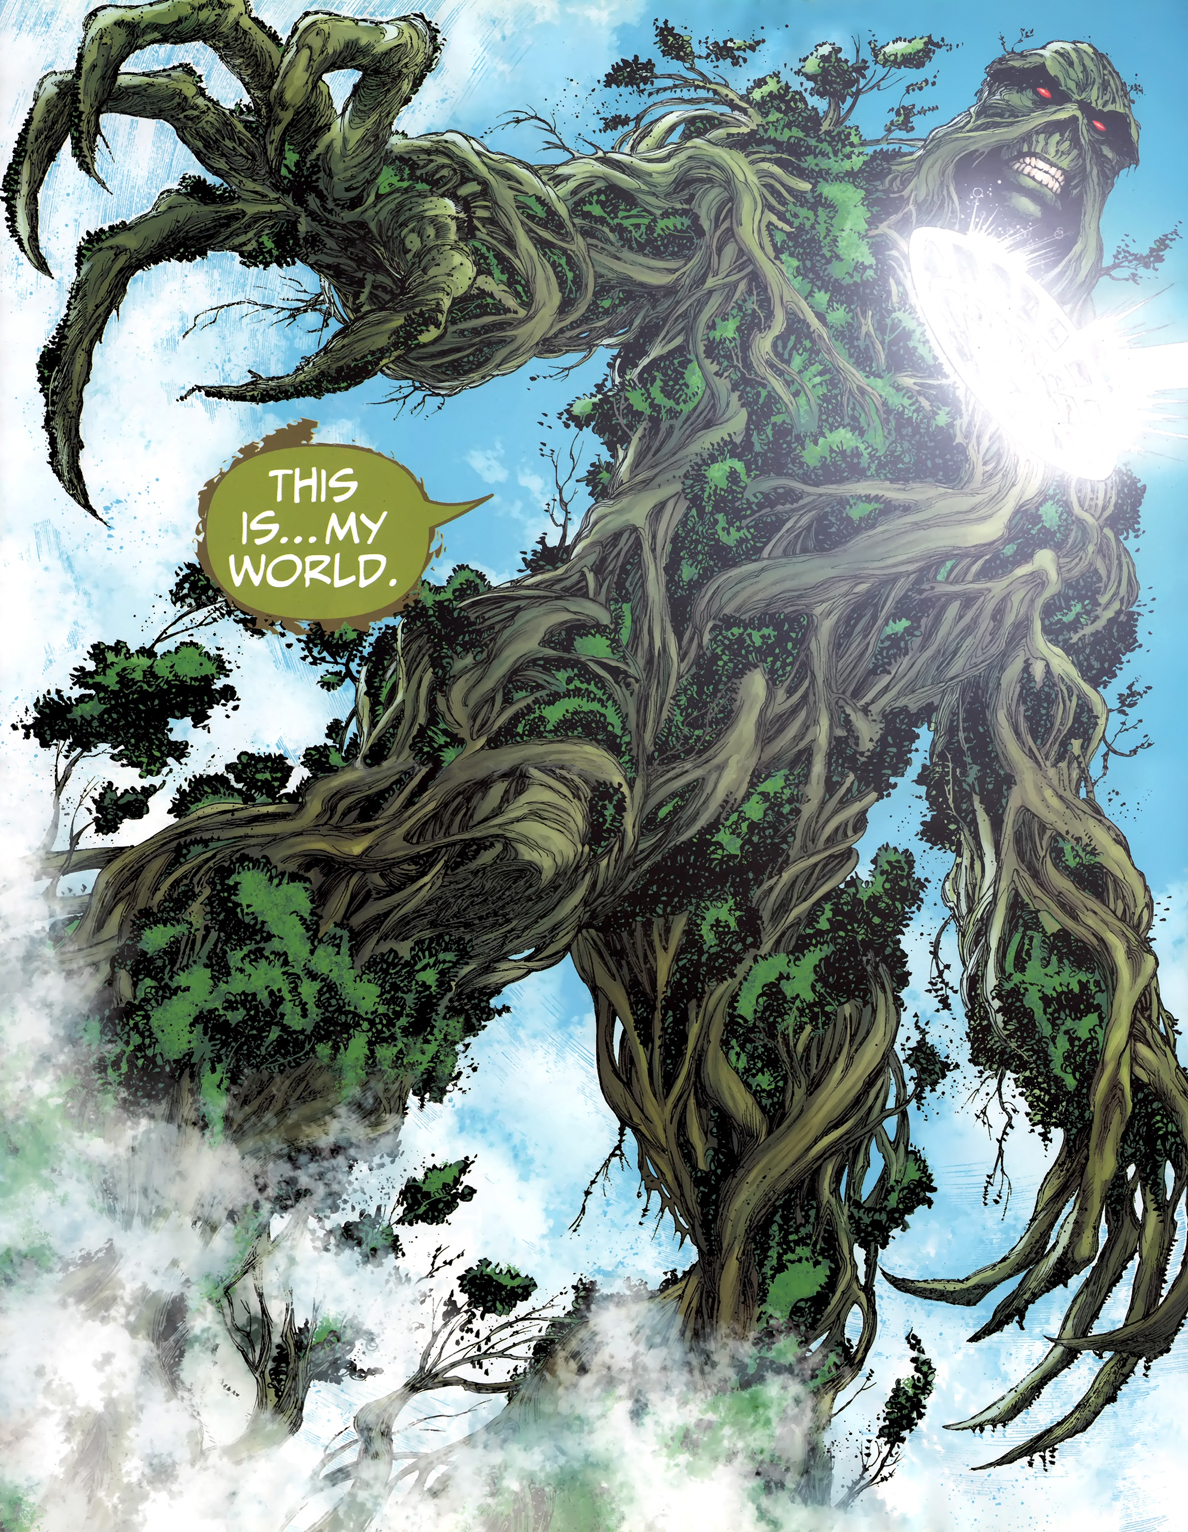 It's A Dan's World: PANEL OF THE BRIGHTEST DAY #24: Swampy ...